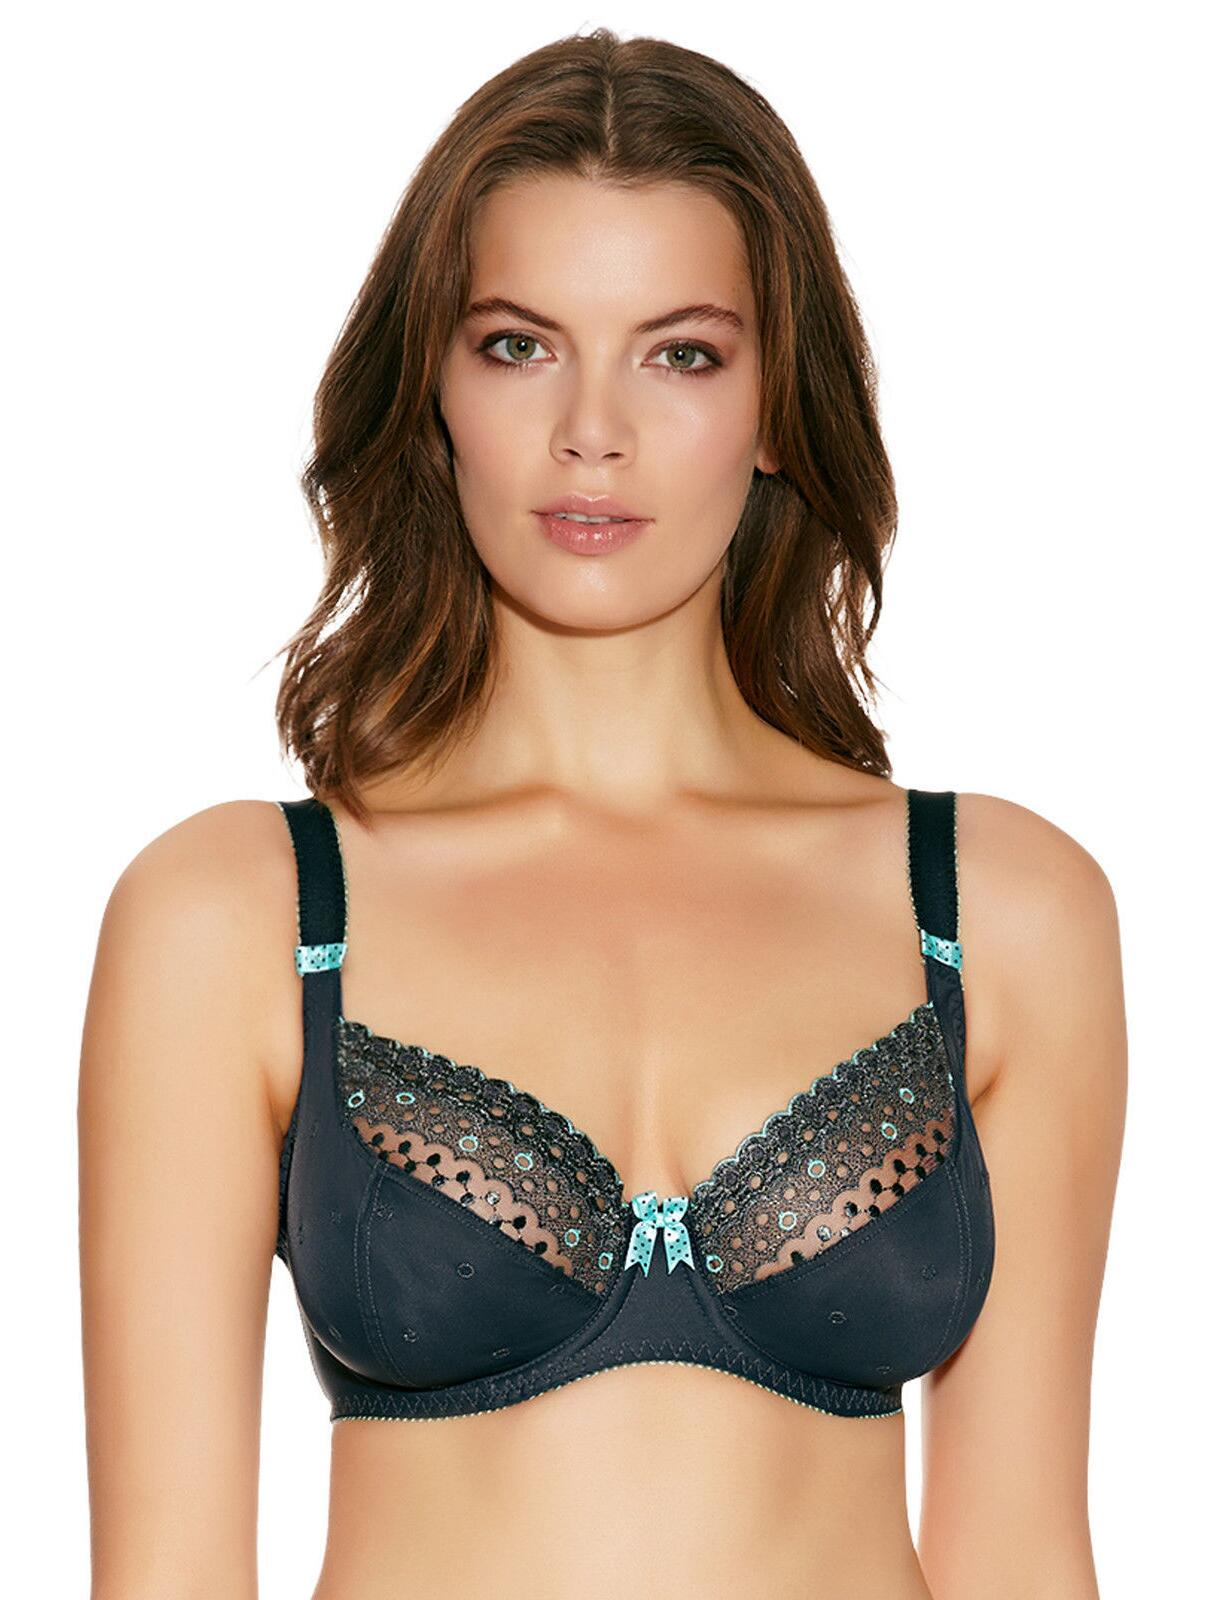 Freya Lingerie Enchanted 1571 Underwired Plunge Balcony Bra - Grey Anthracite